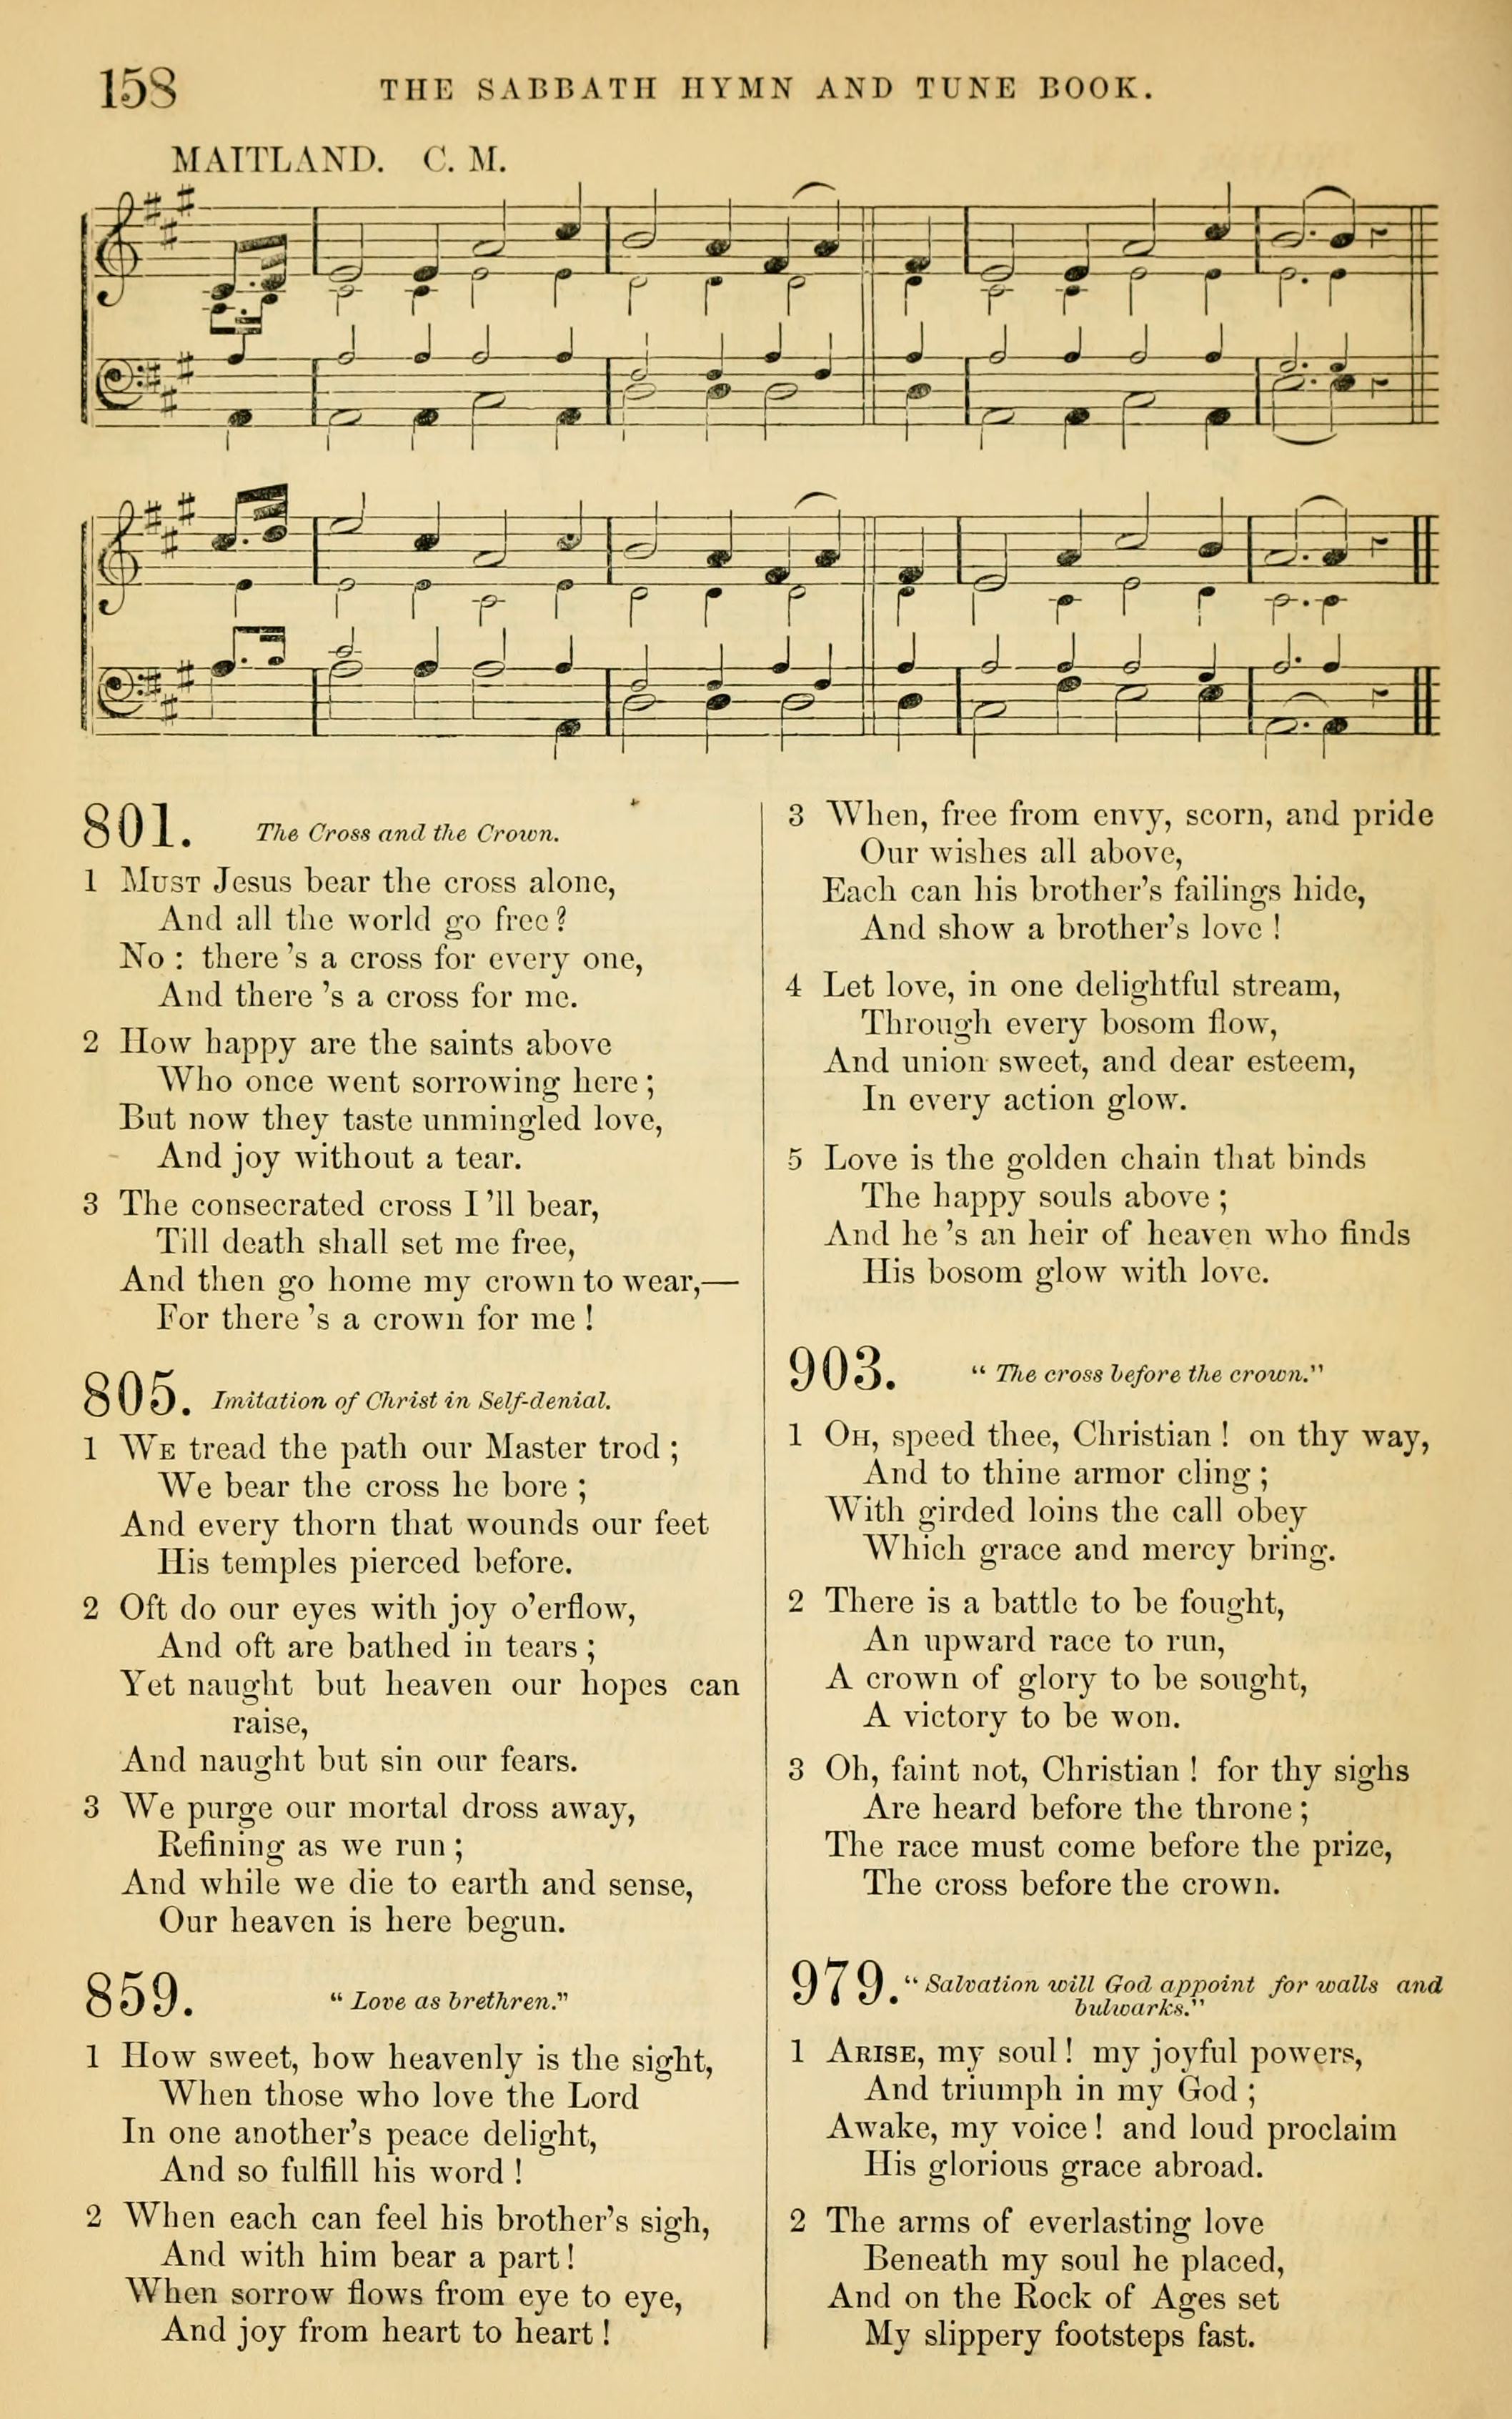 Fig. 4.   The Sabbath Hymn and Tune Book  (NY: Mason Brothers, 1859).